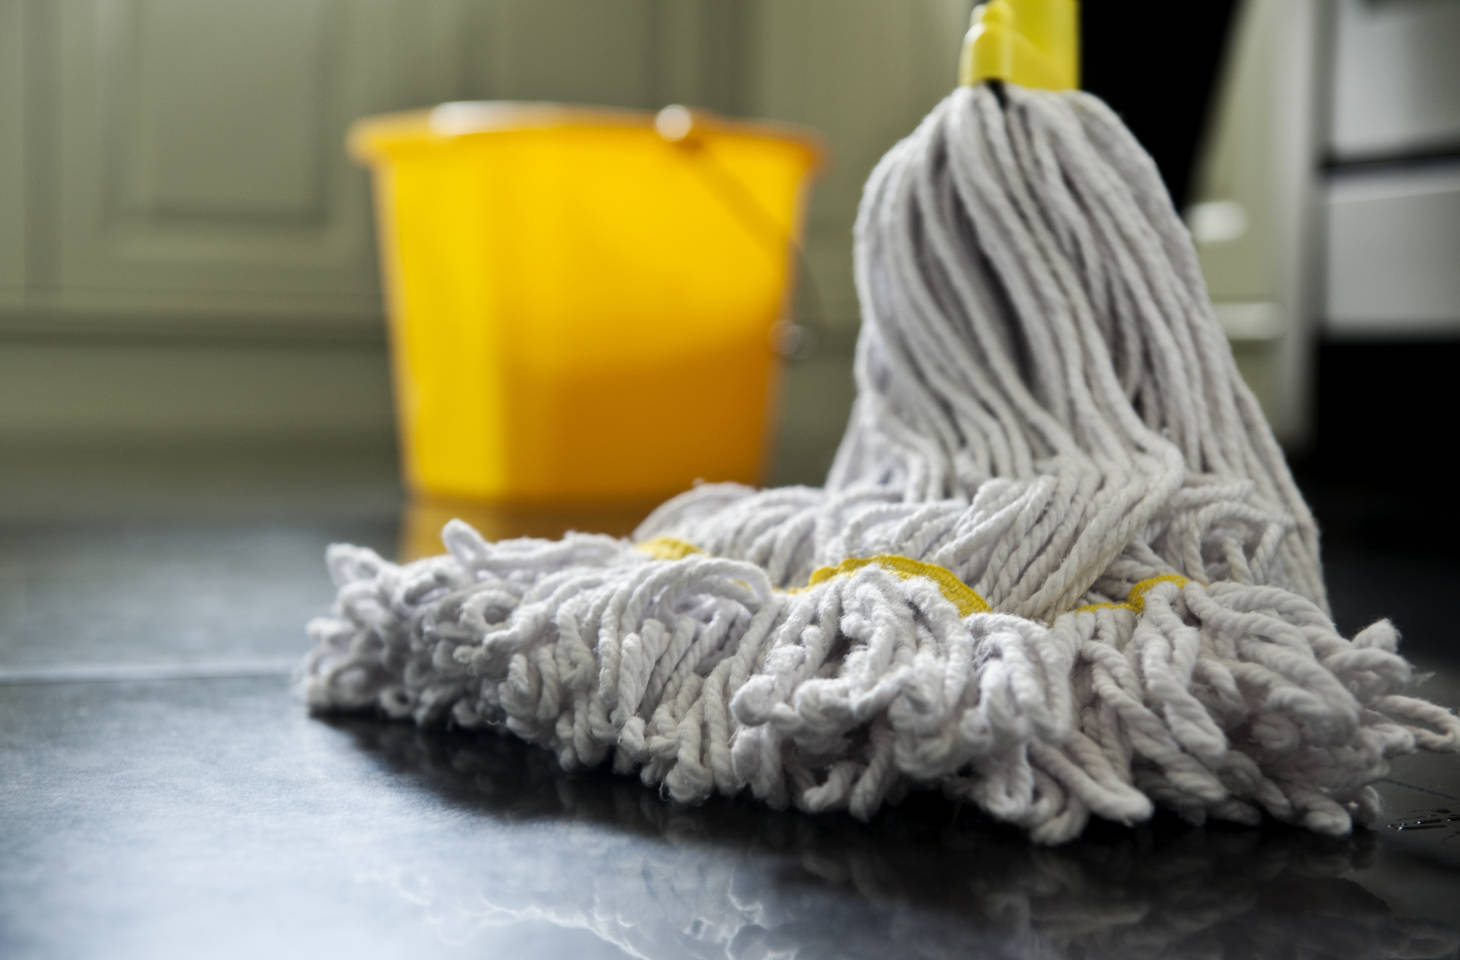 mop and bucket on kitchen floor